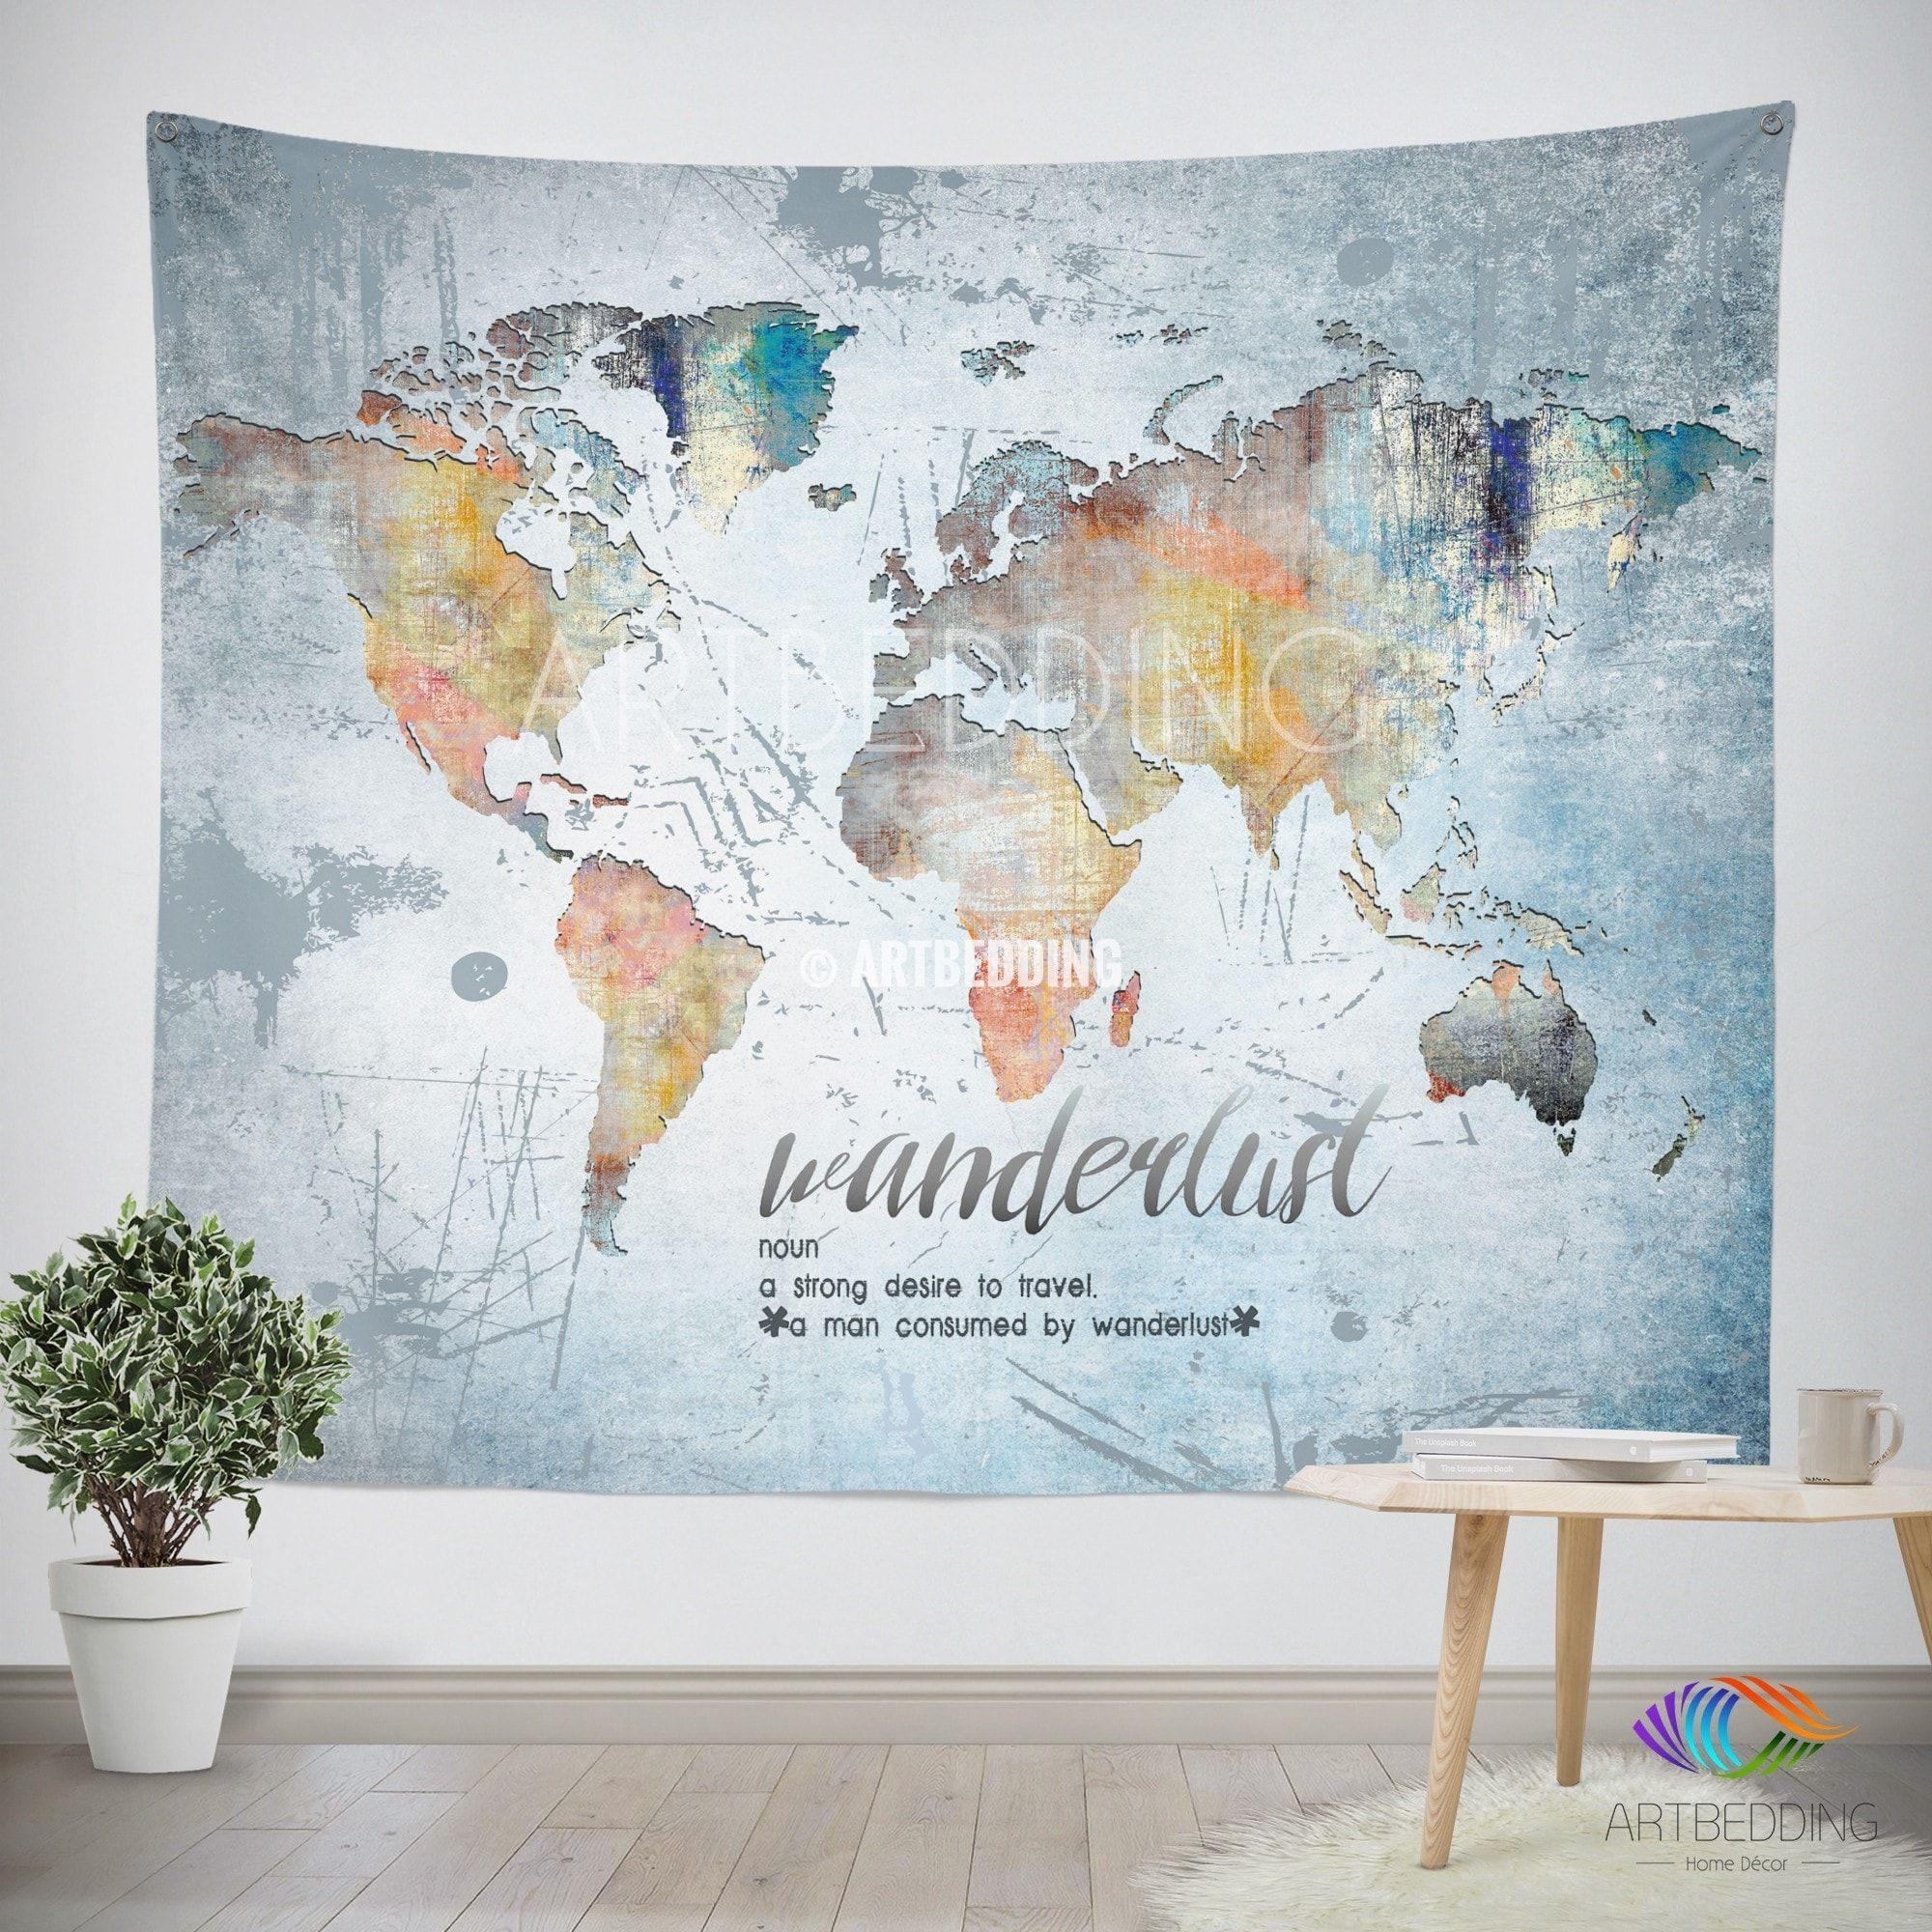 Wanderlust quote wall tapestry world map watercolor wall hanging wanderlust quote wall tapestry world map watercolor wall hanging grunge world map wall tapestries gumiabroncs Images